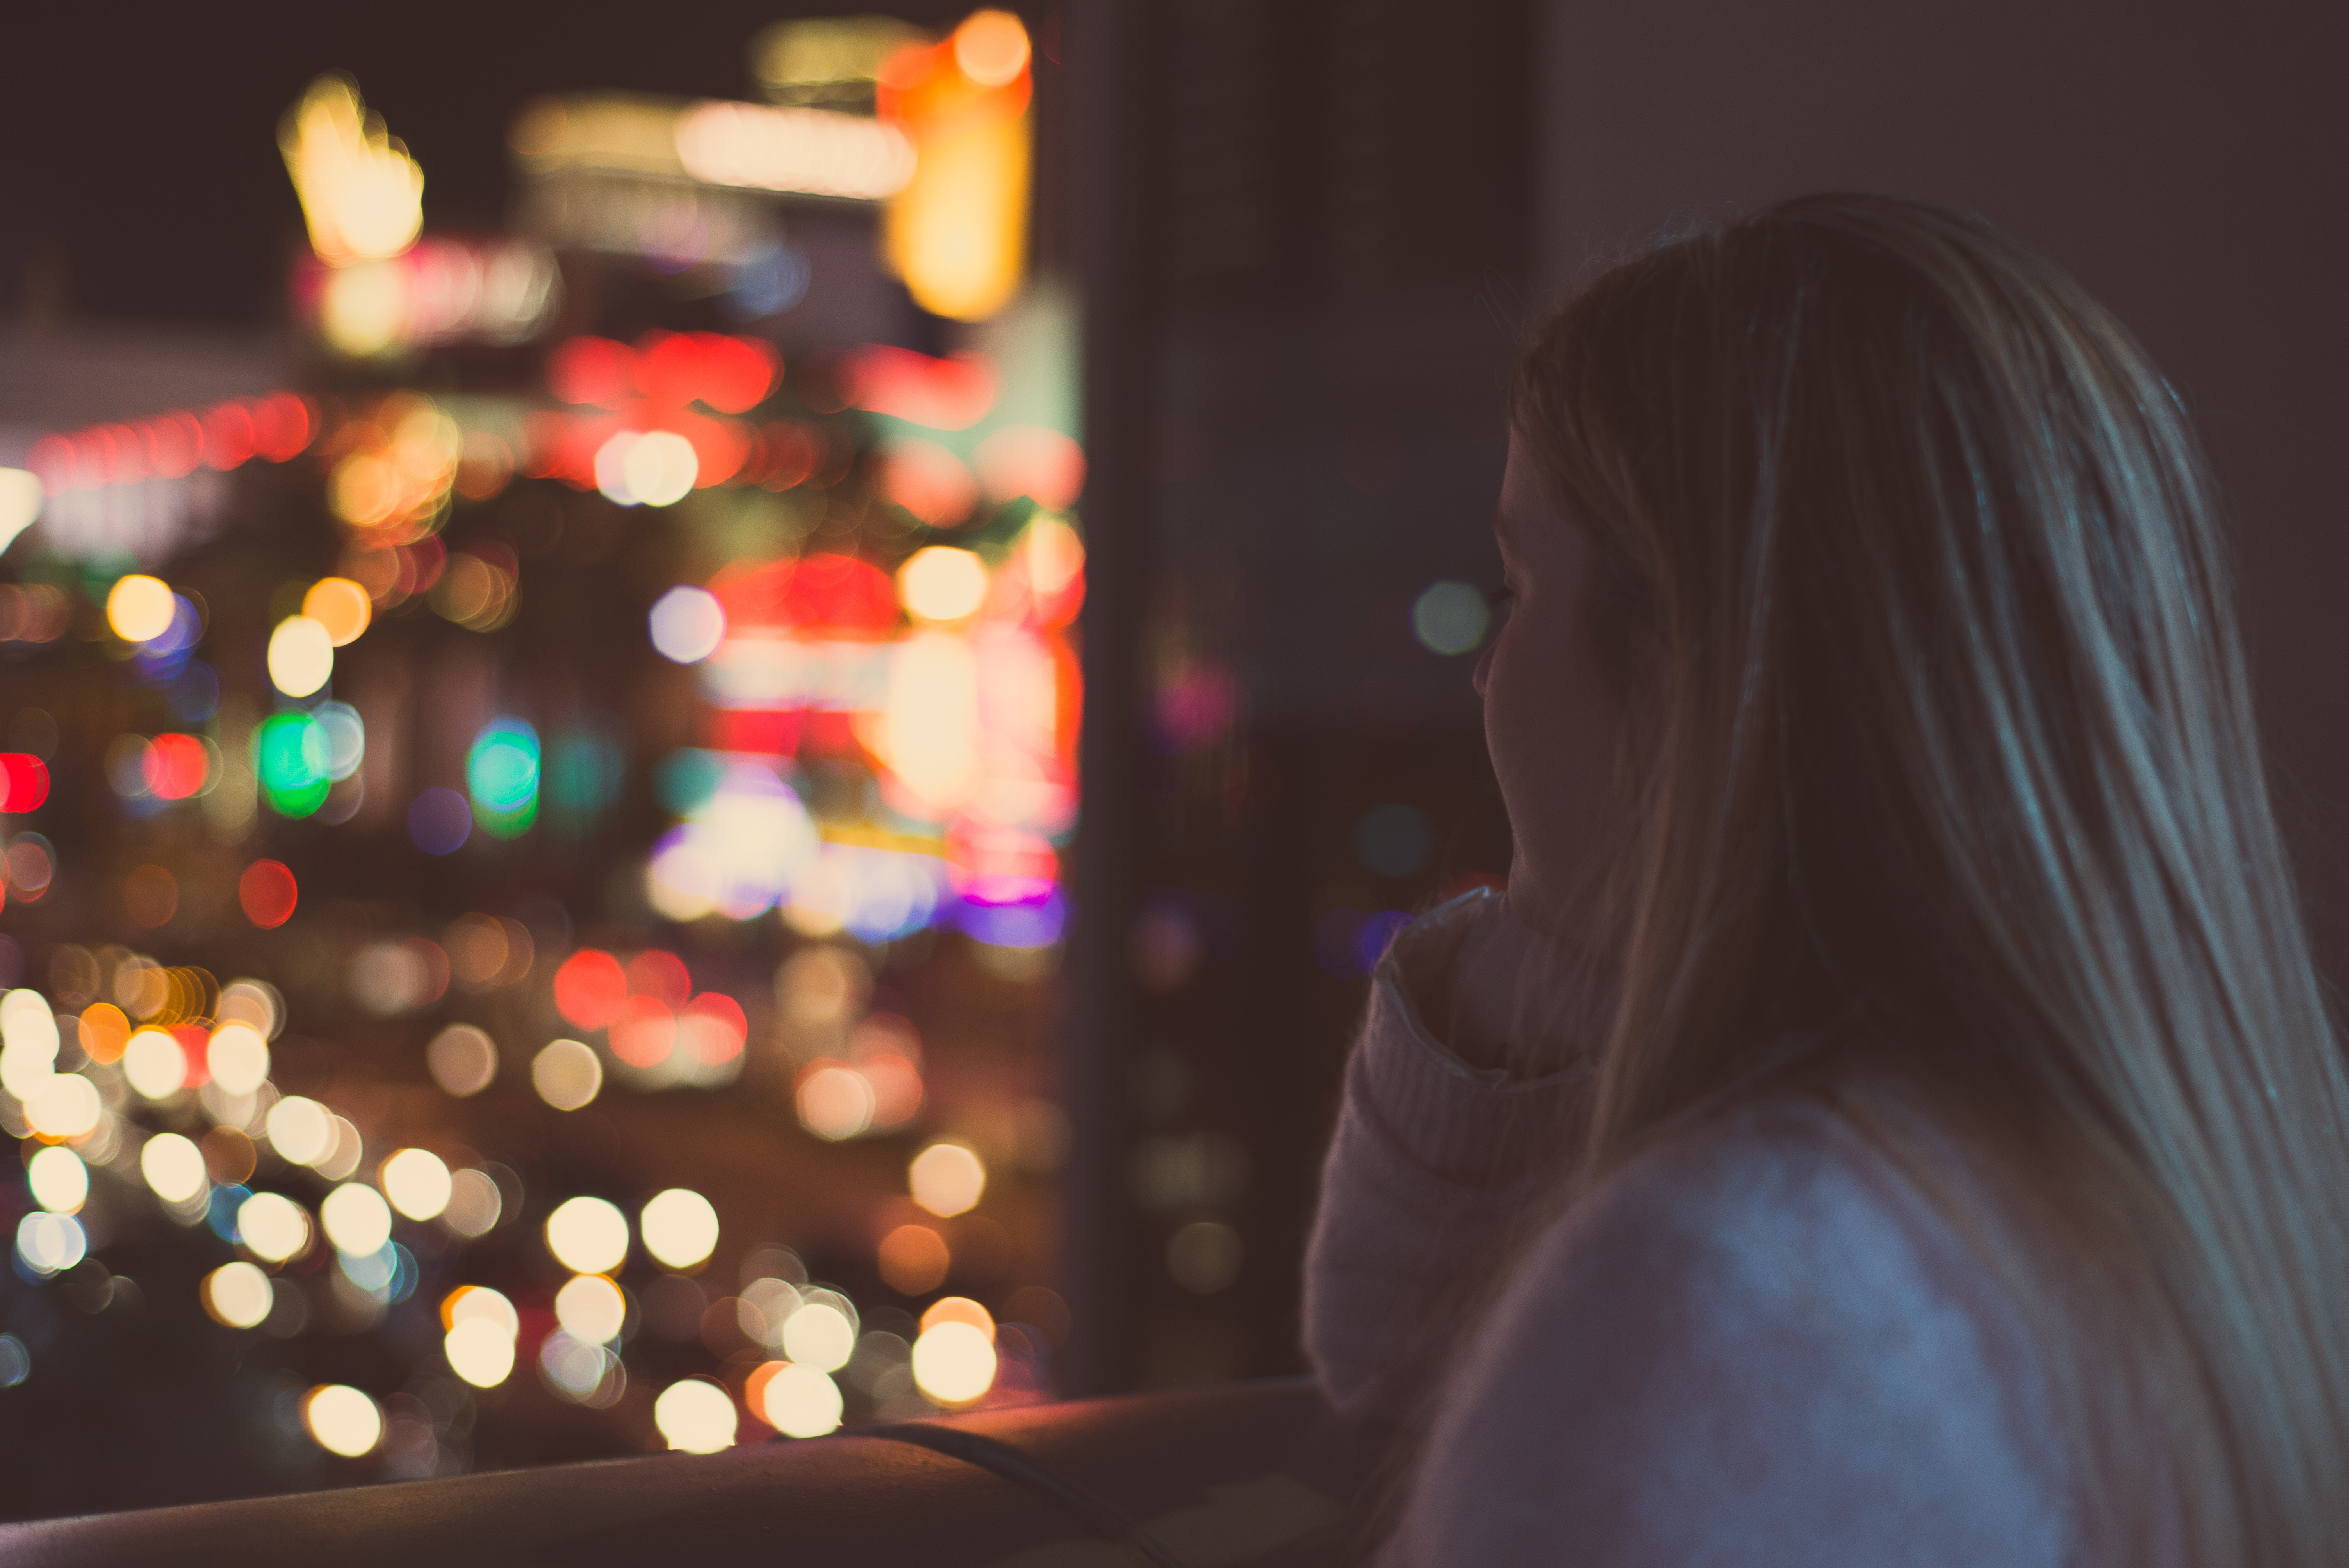 woman looking out window at city lights